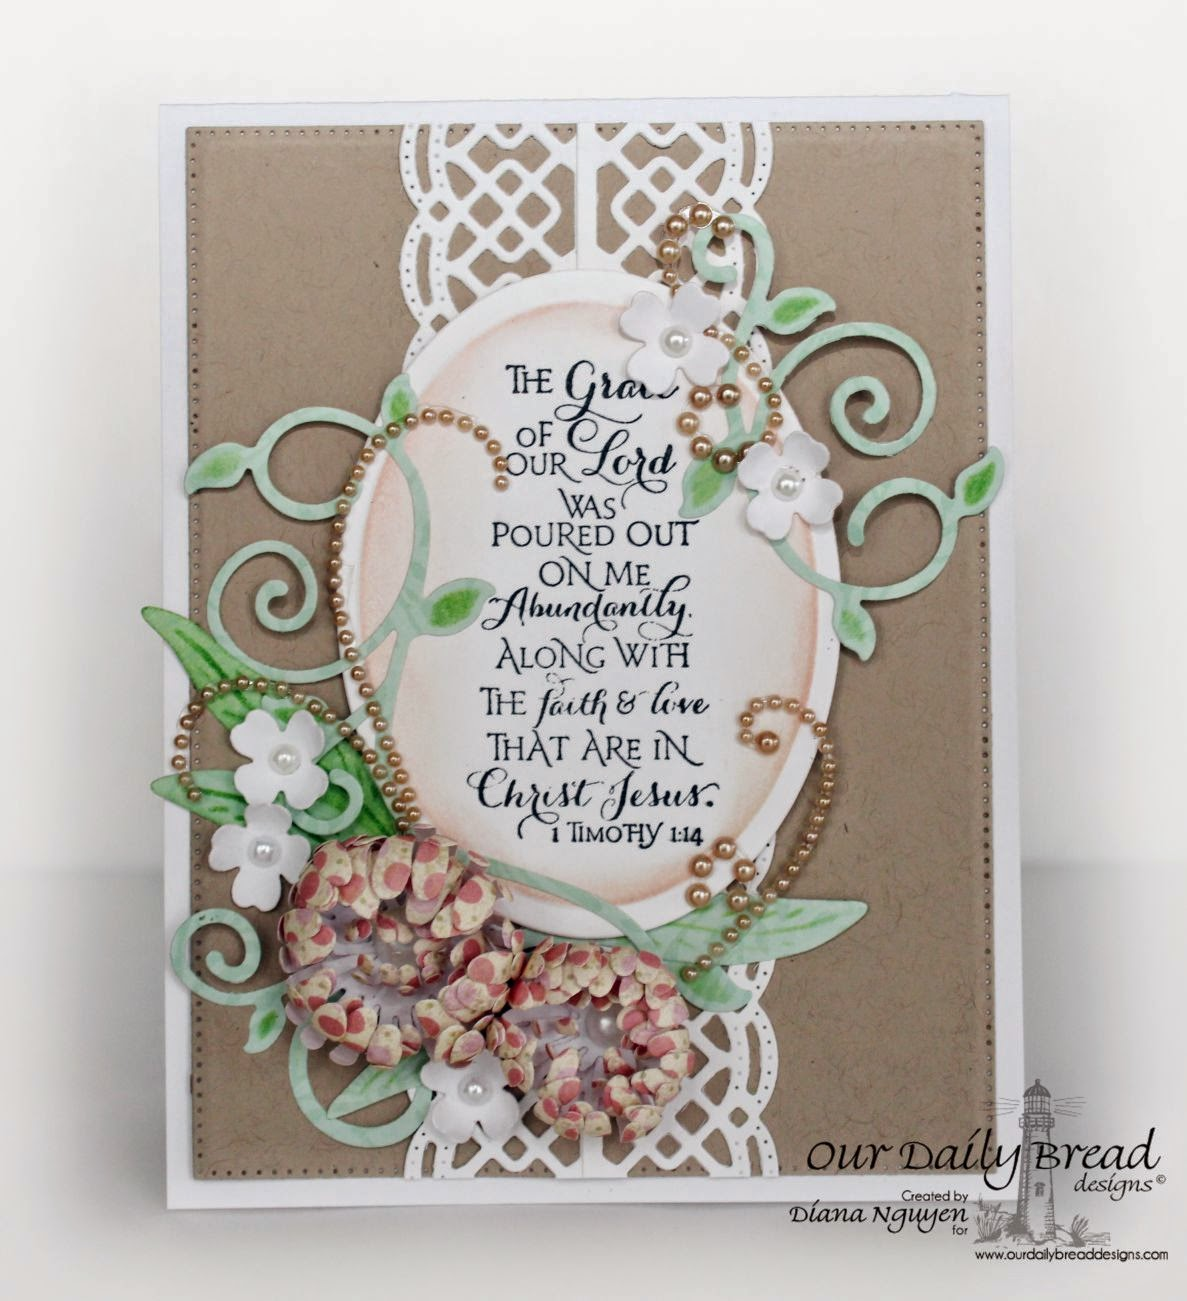 Diana Nguyen, Our Daily Bread Designs, Scripture Collection, Scripture